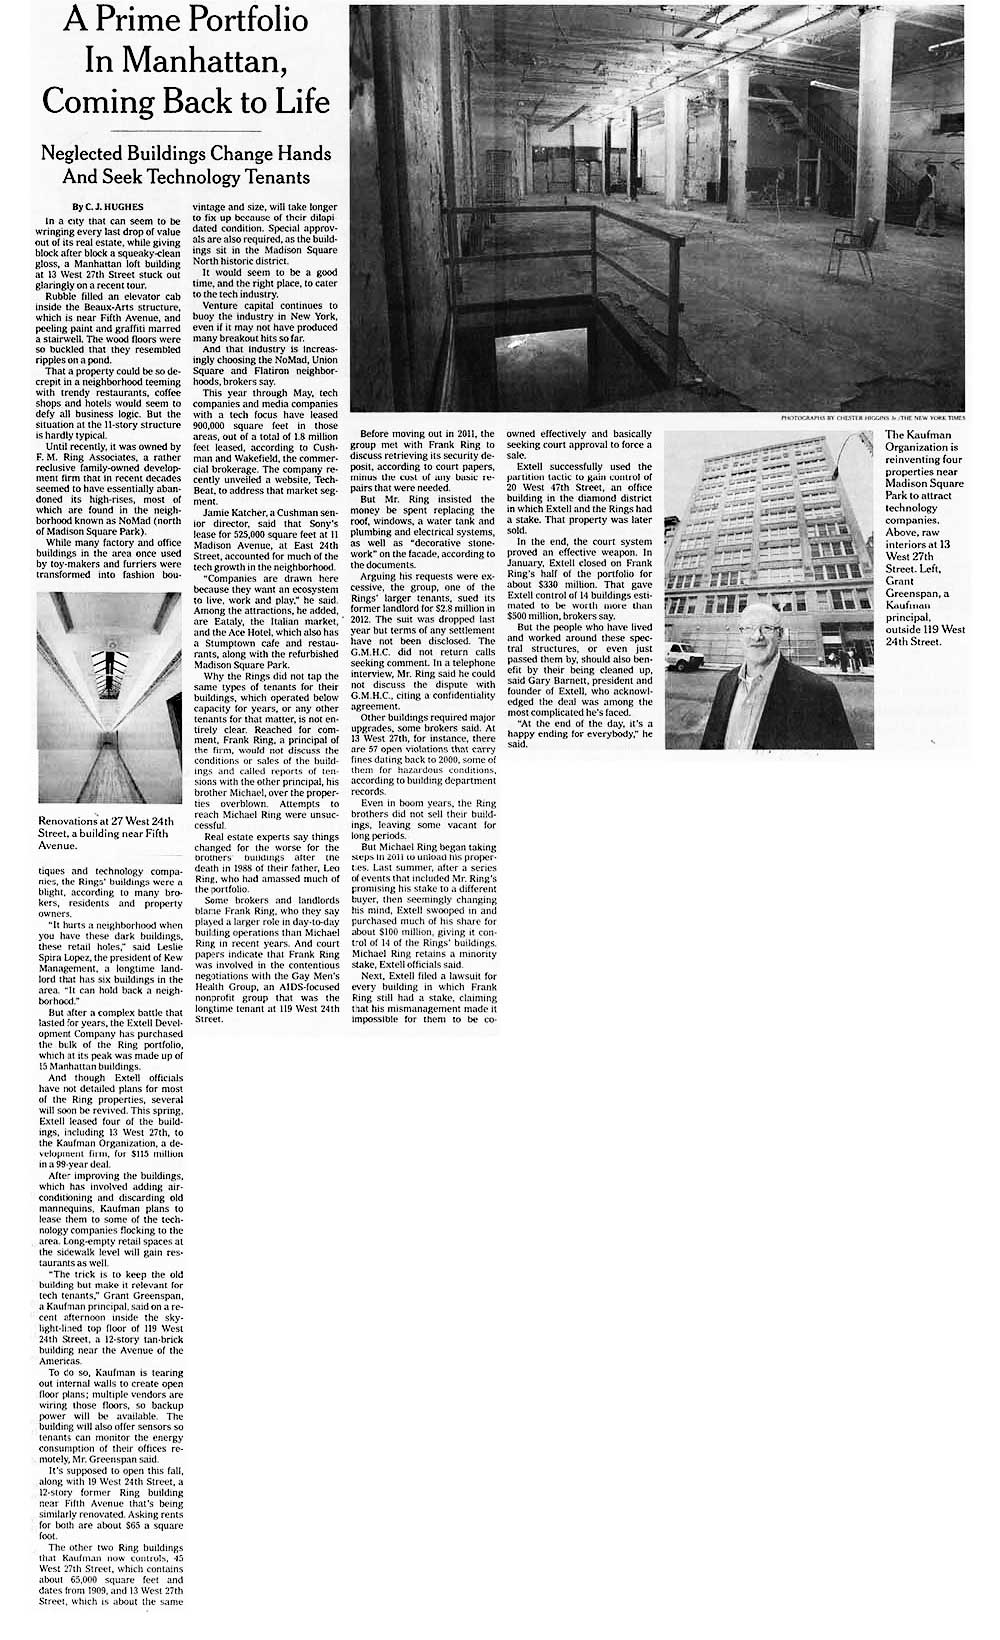 The-New-York-Times---A-Prime-Portfolio-In-Manhattan,-Coming-Back-to-Life---6.25.14